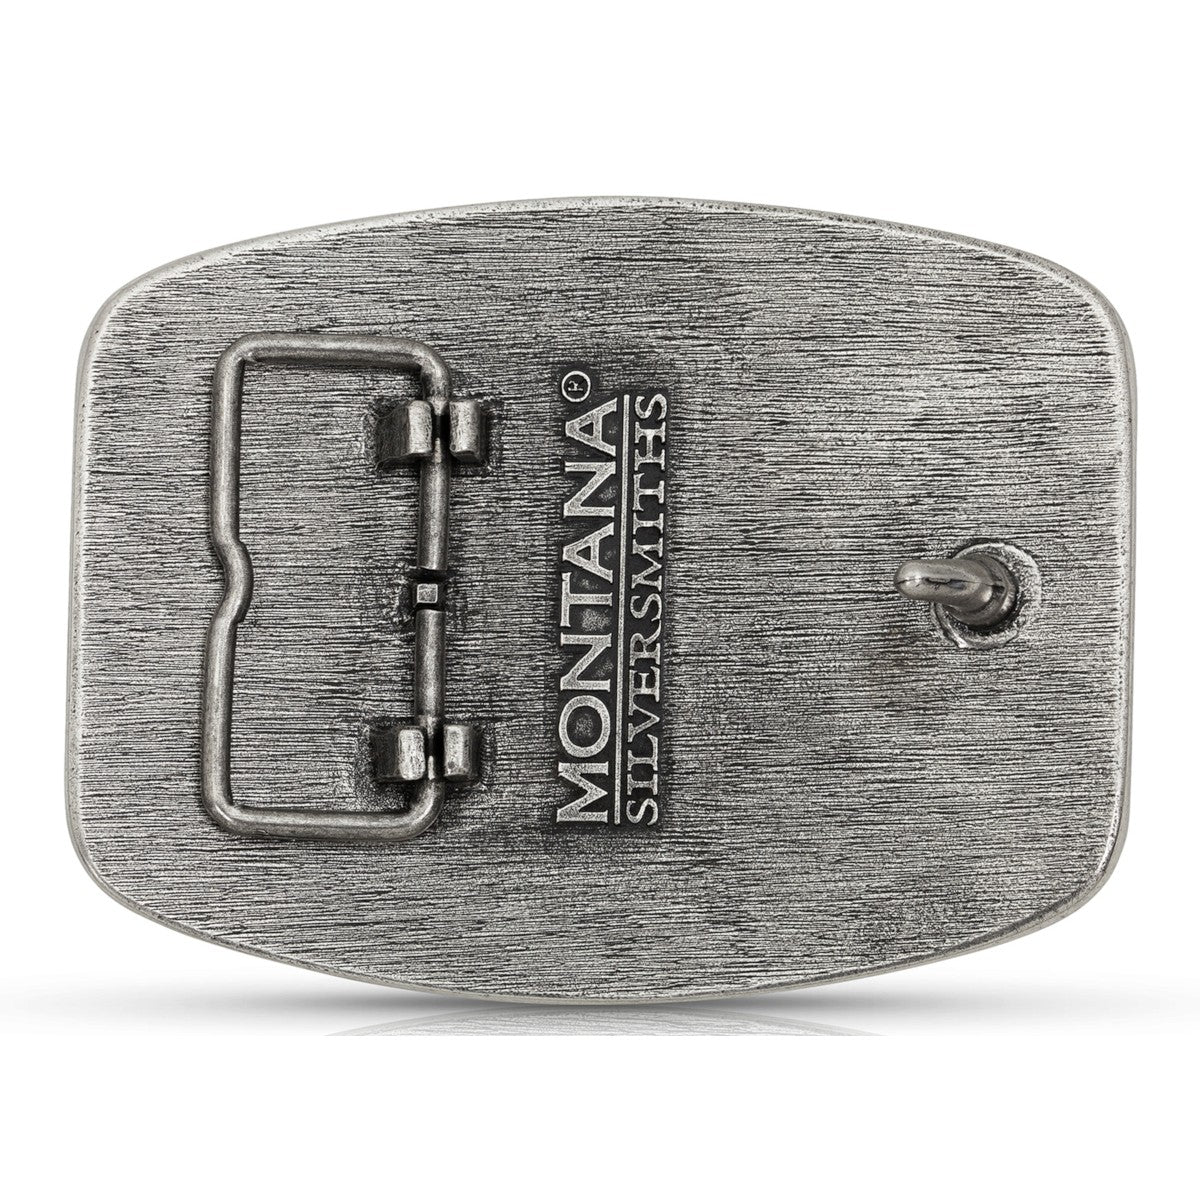 Montana Silversmiths Defending Freedom USA Belt Buckle